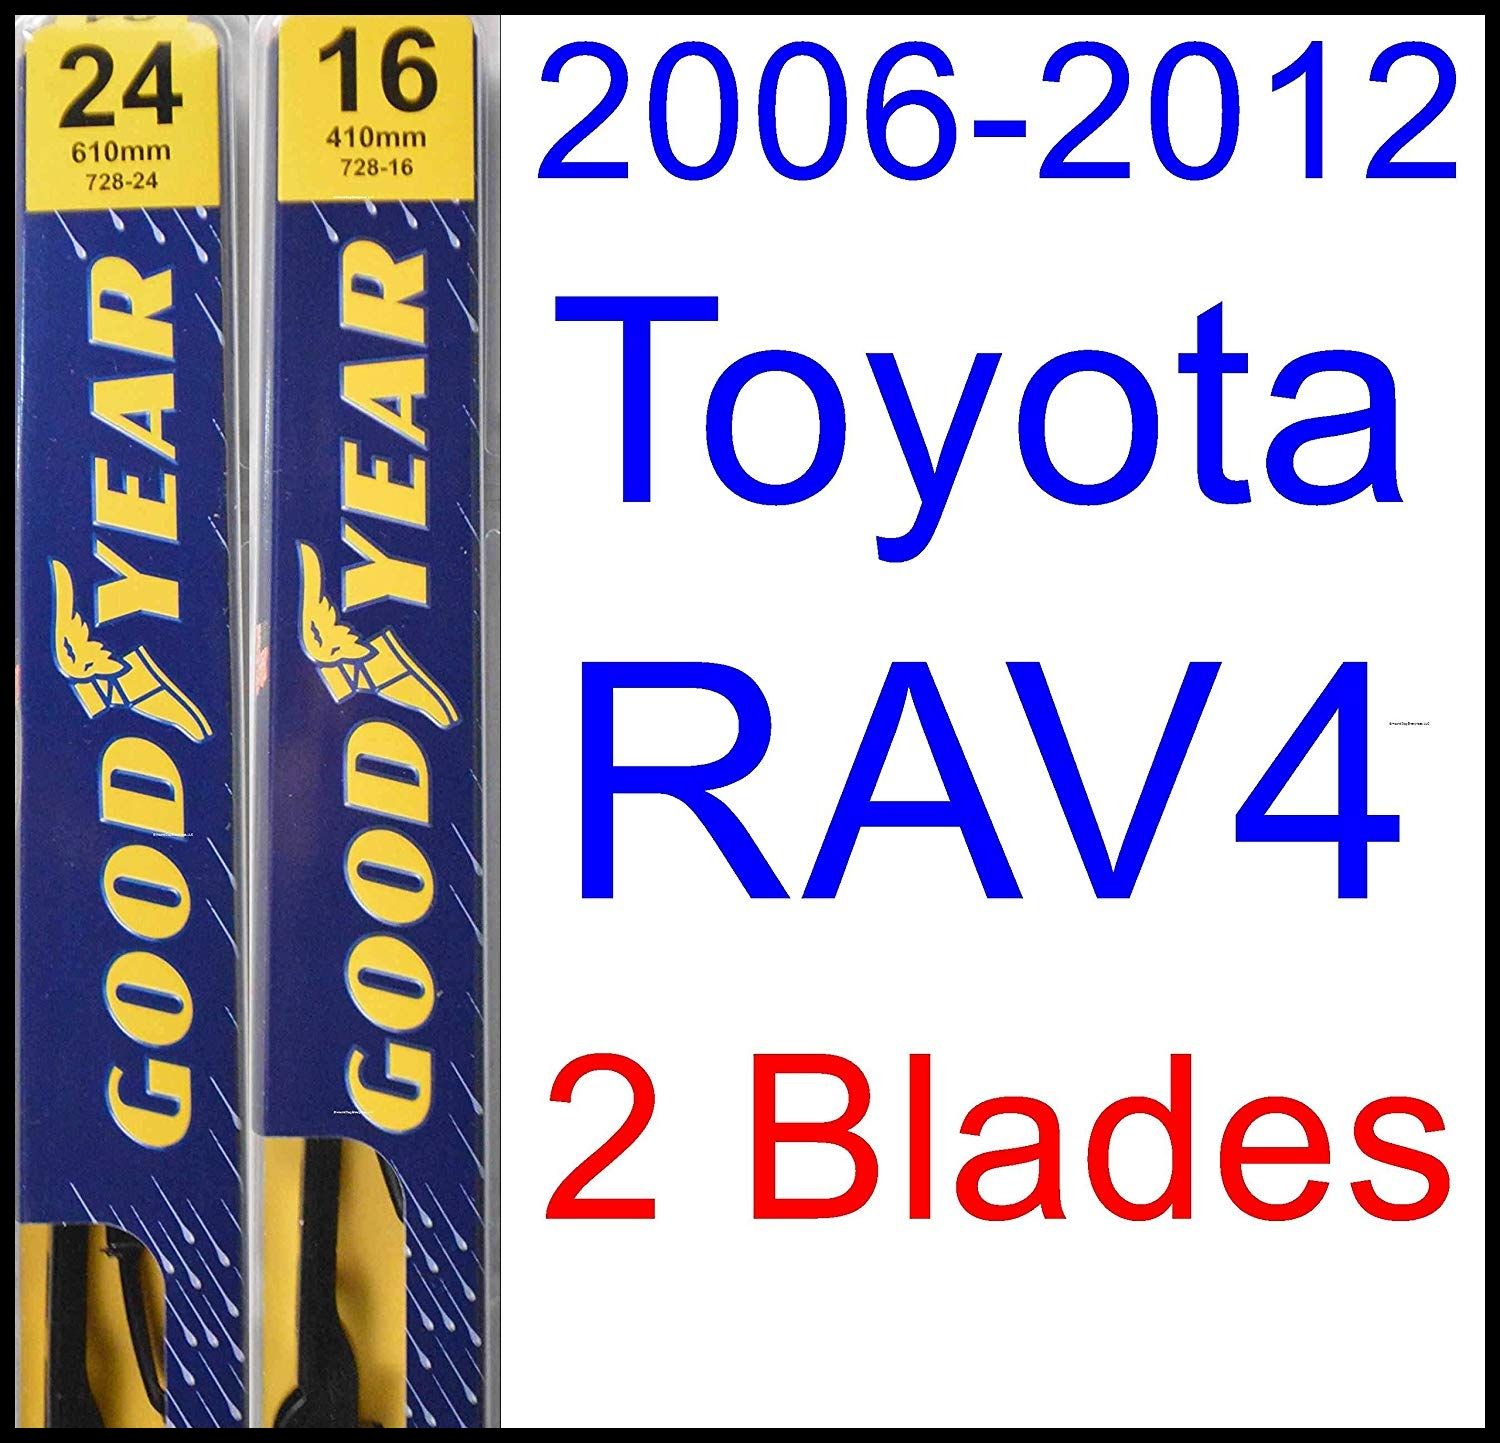 Amazon 2006 2012 Toyota RAV4 Replacement Wiper Blade Set Kit Set of 3 Blades Goodyear Wiper Blades Premium 2007 2008 2009 2010 2011 Automotive